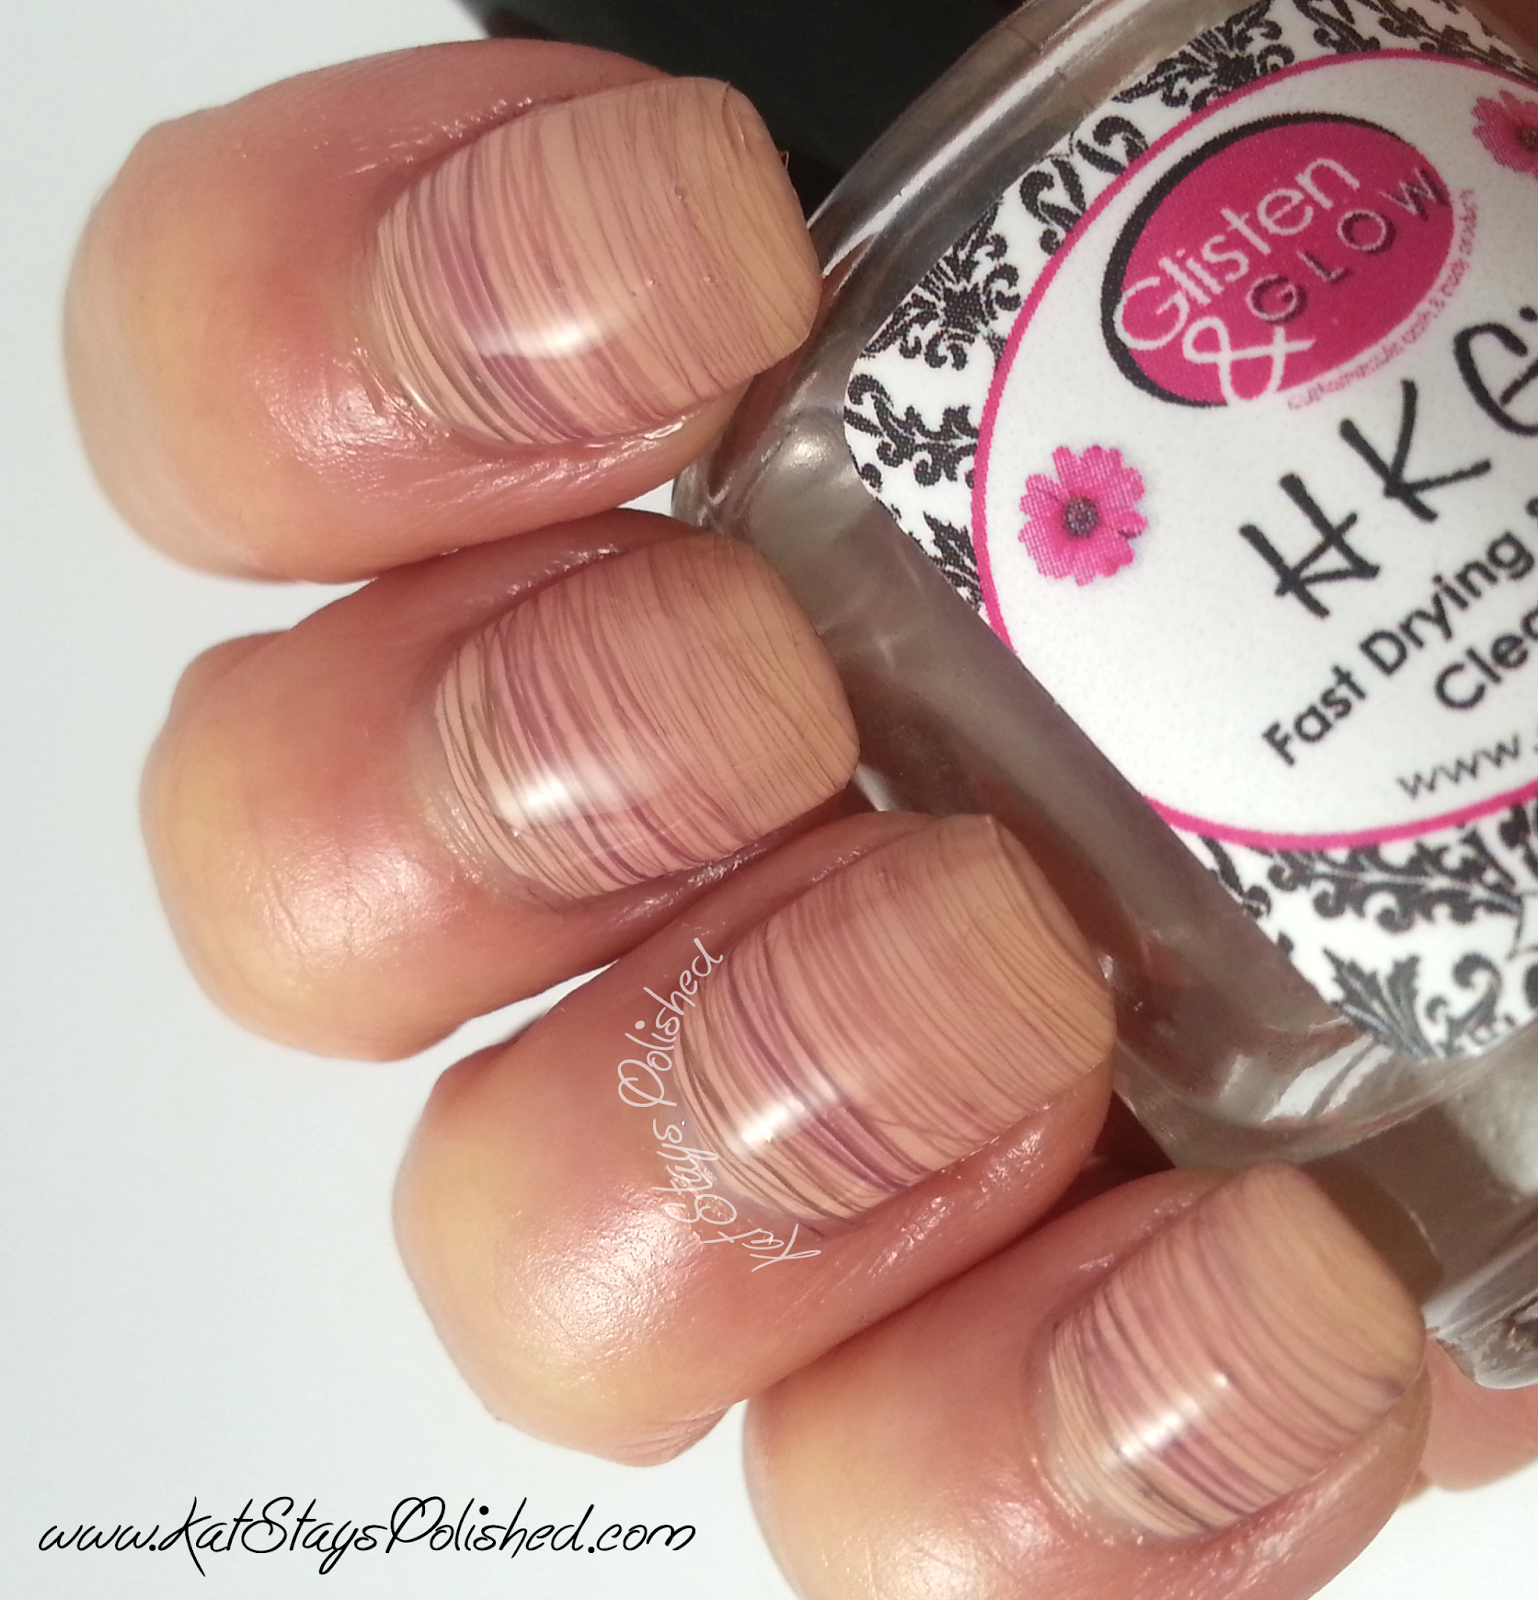 Zoya Naturel - Ombre Spun Sugar Nail Art -=With Top Coat | Kat Stays Polished